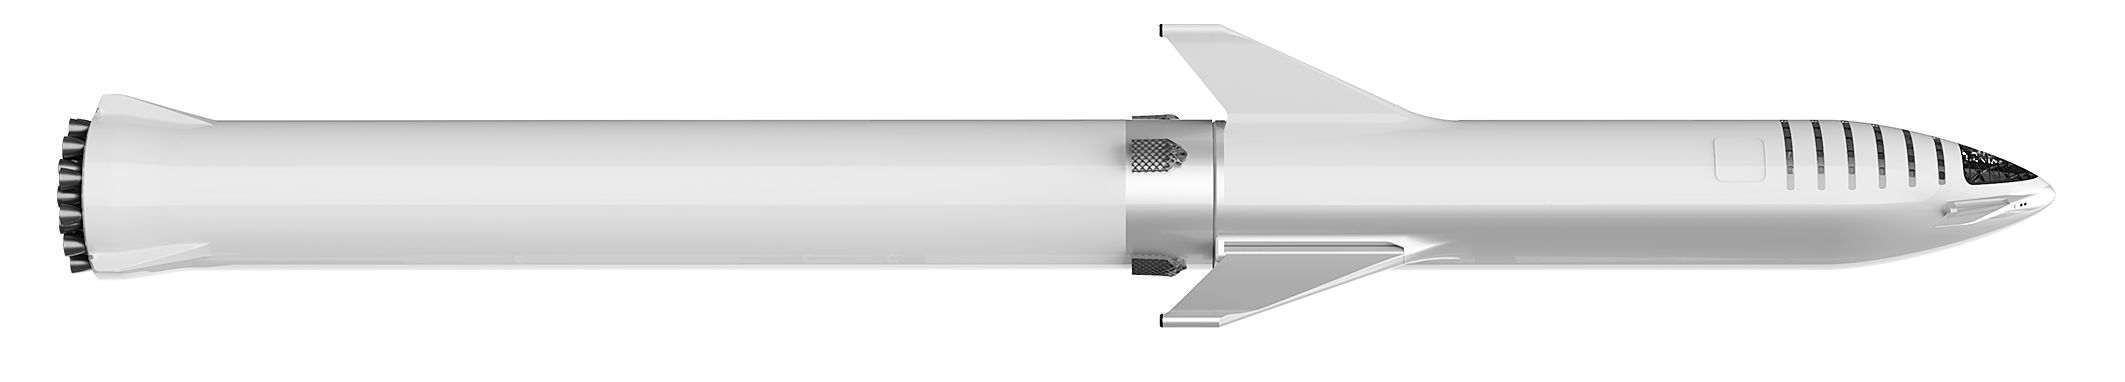 BFR booster and spaceship overview (SpaceX) edit